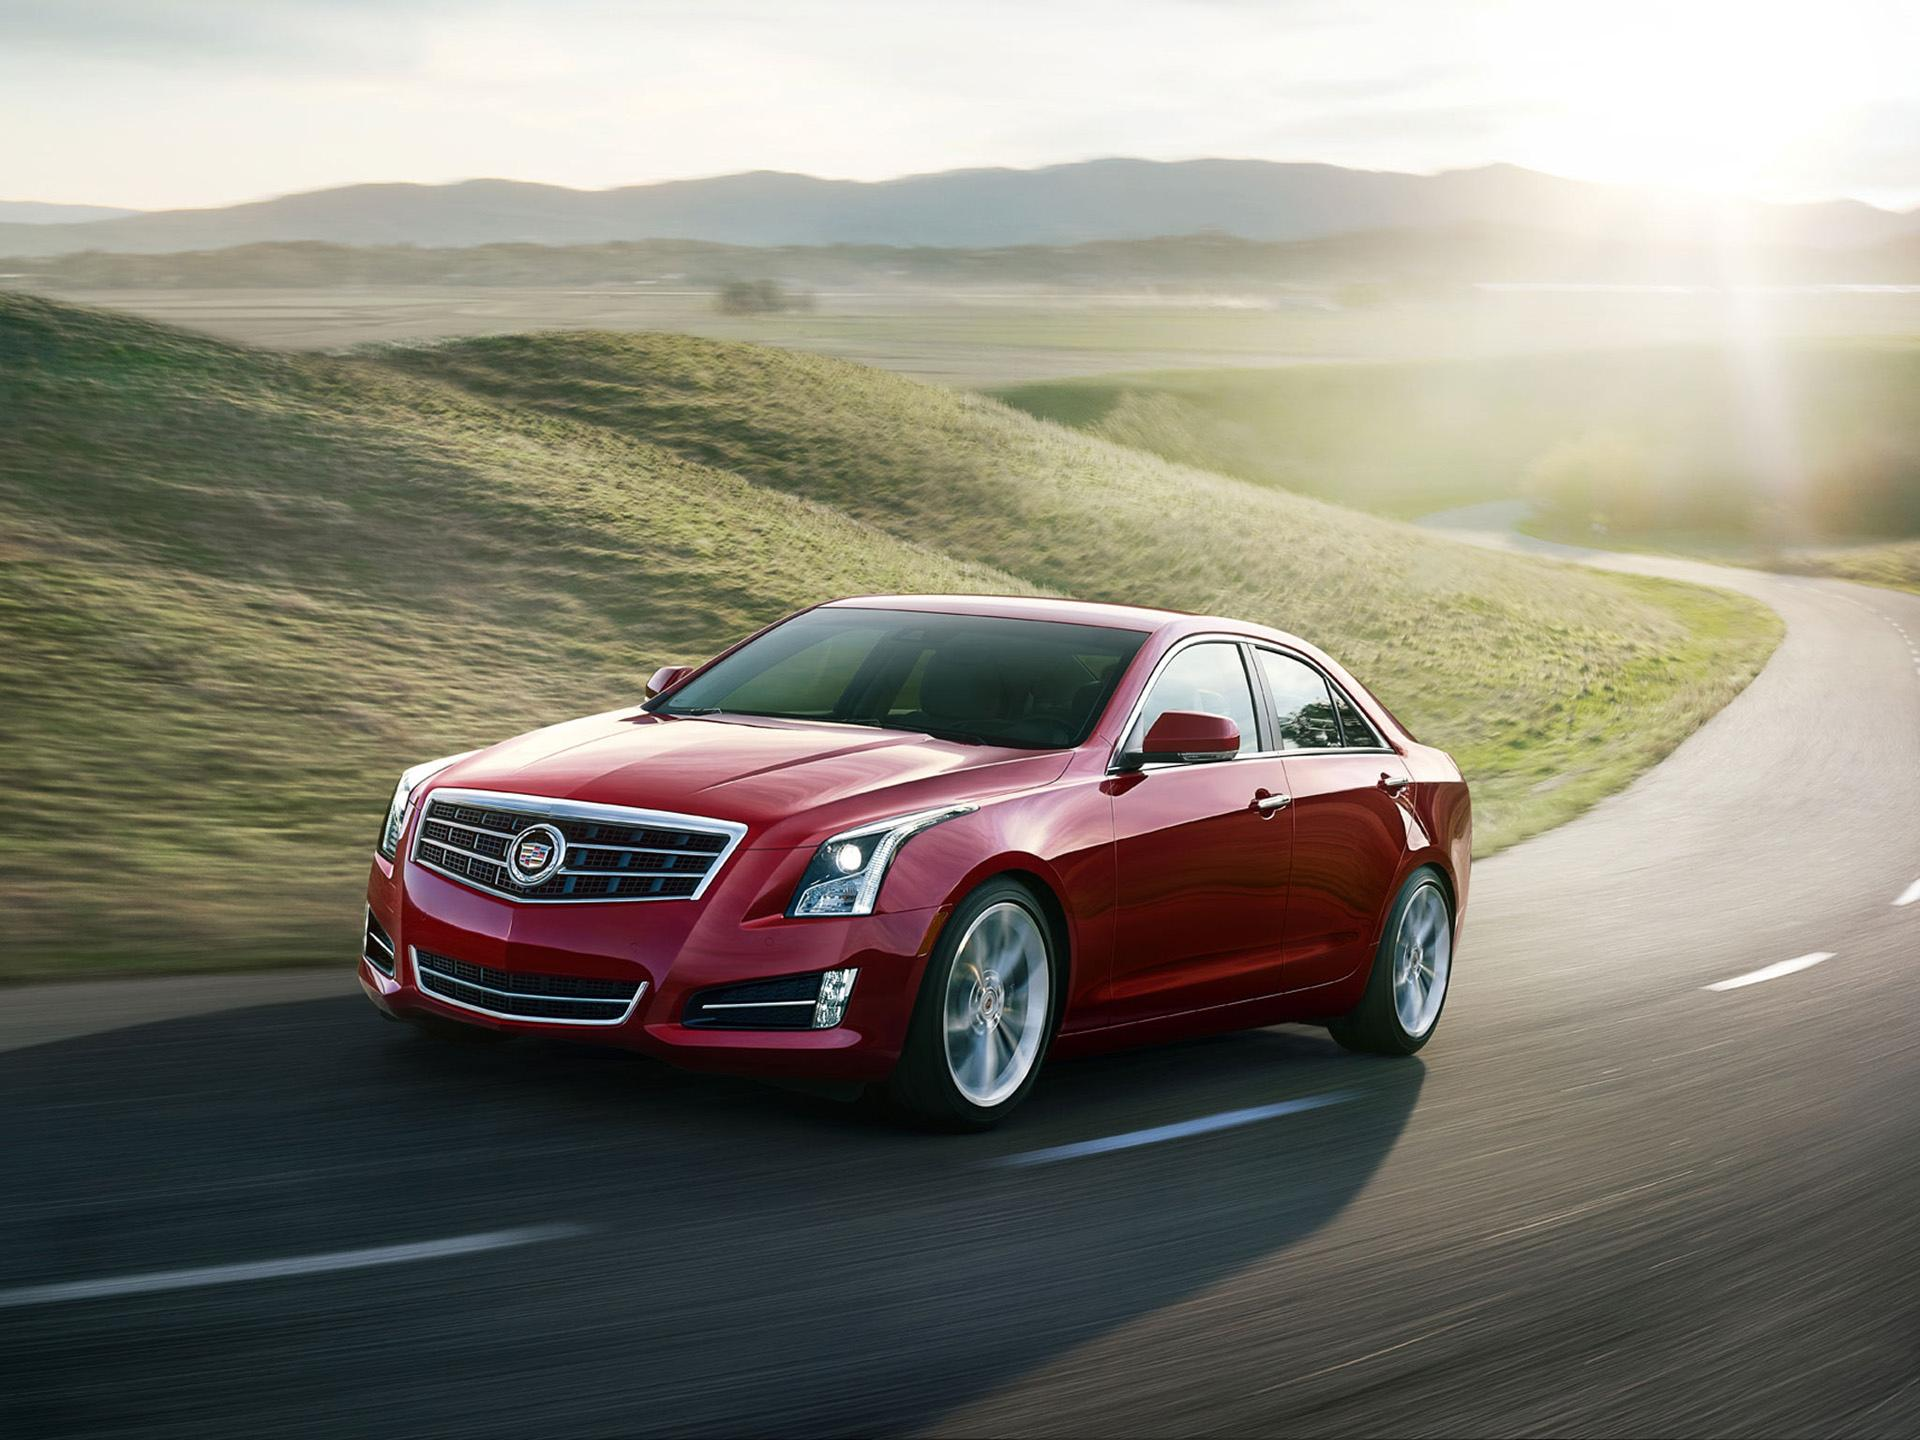 Cadillac CTS wallpapers HD quality